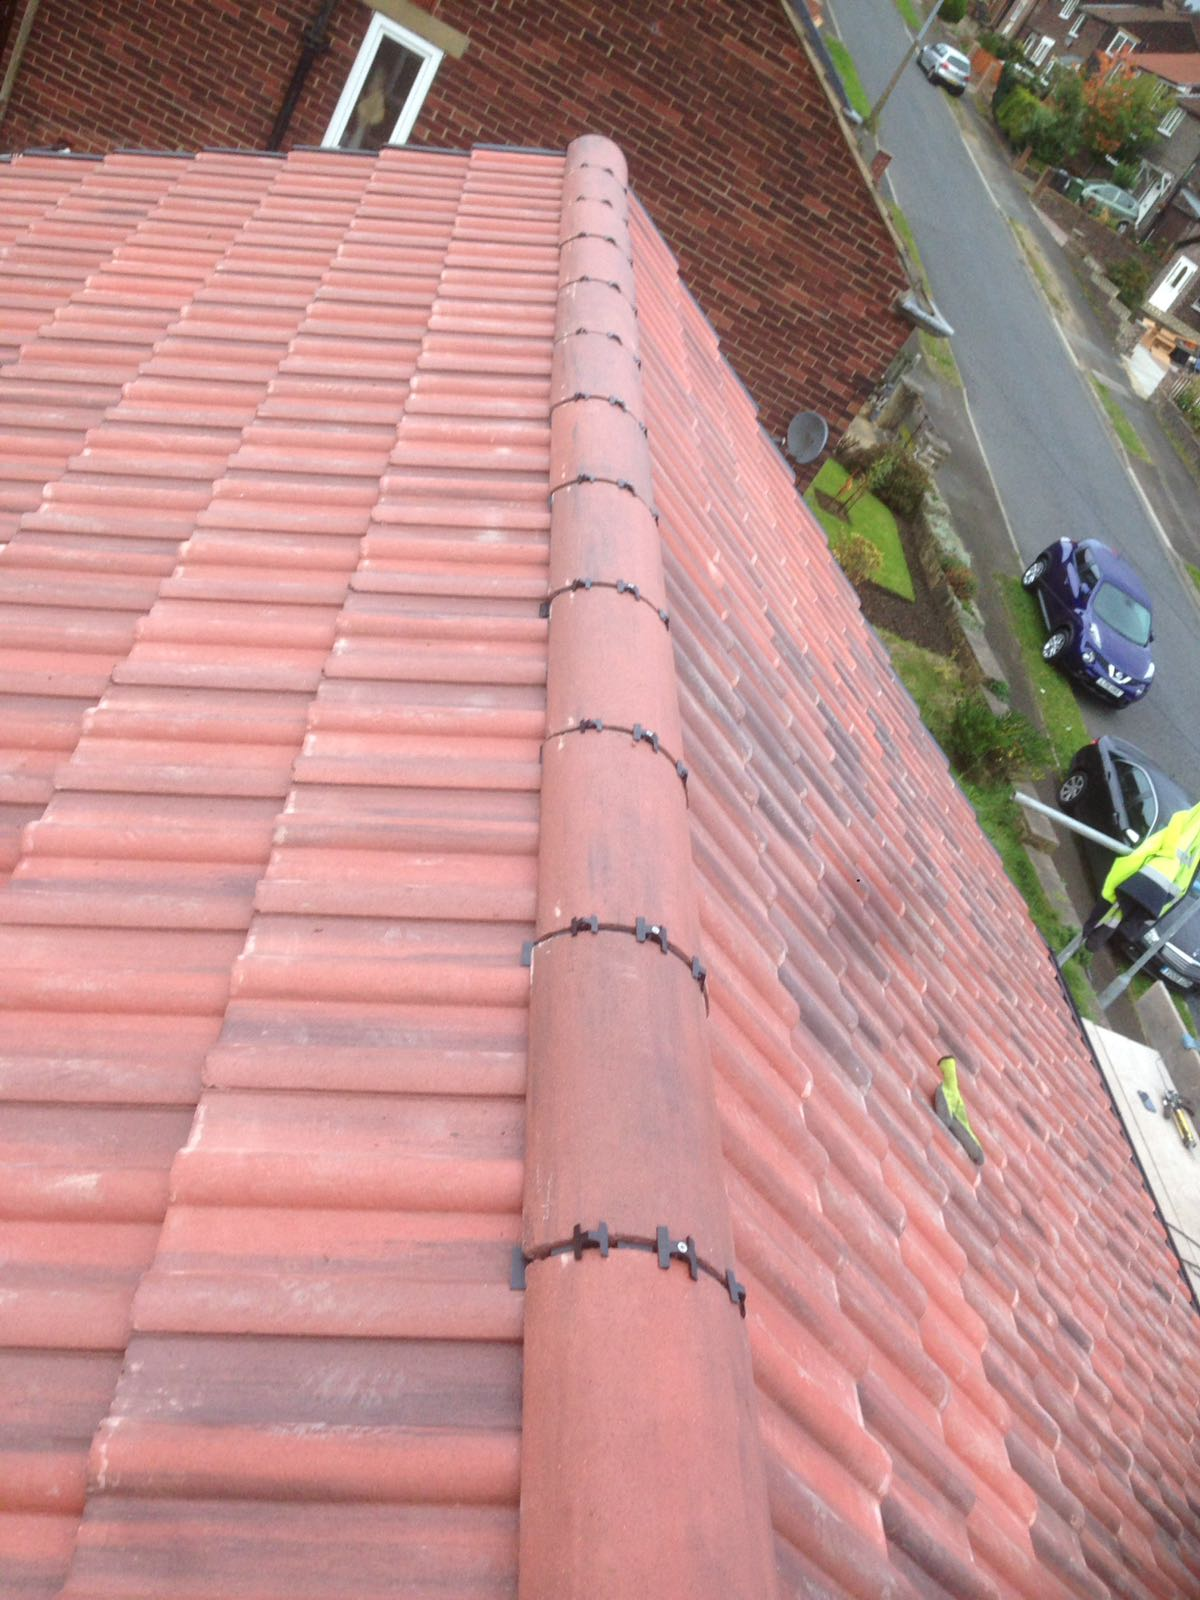 Brand New Concrete Tiled Roof East Coast Roofing